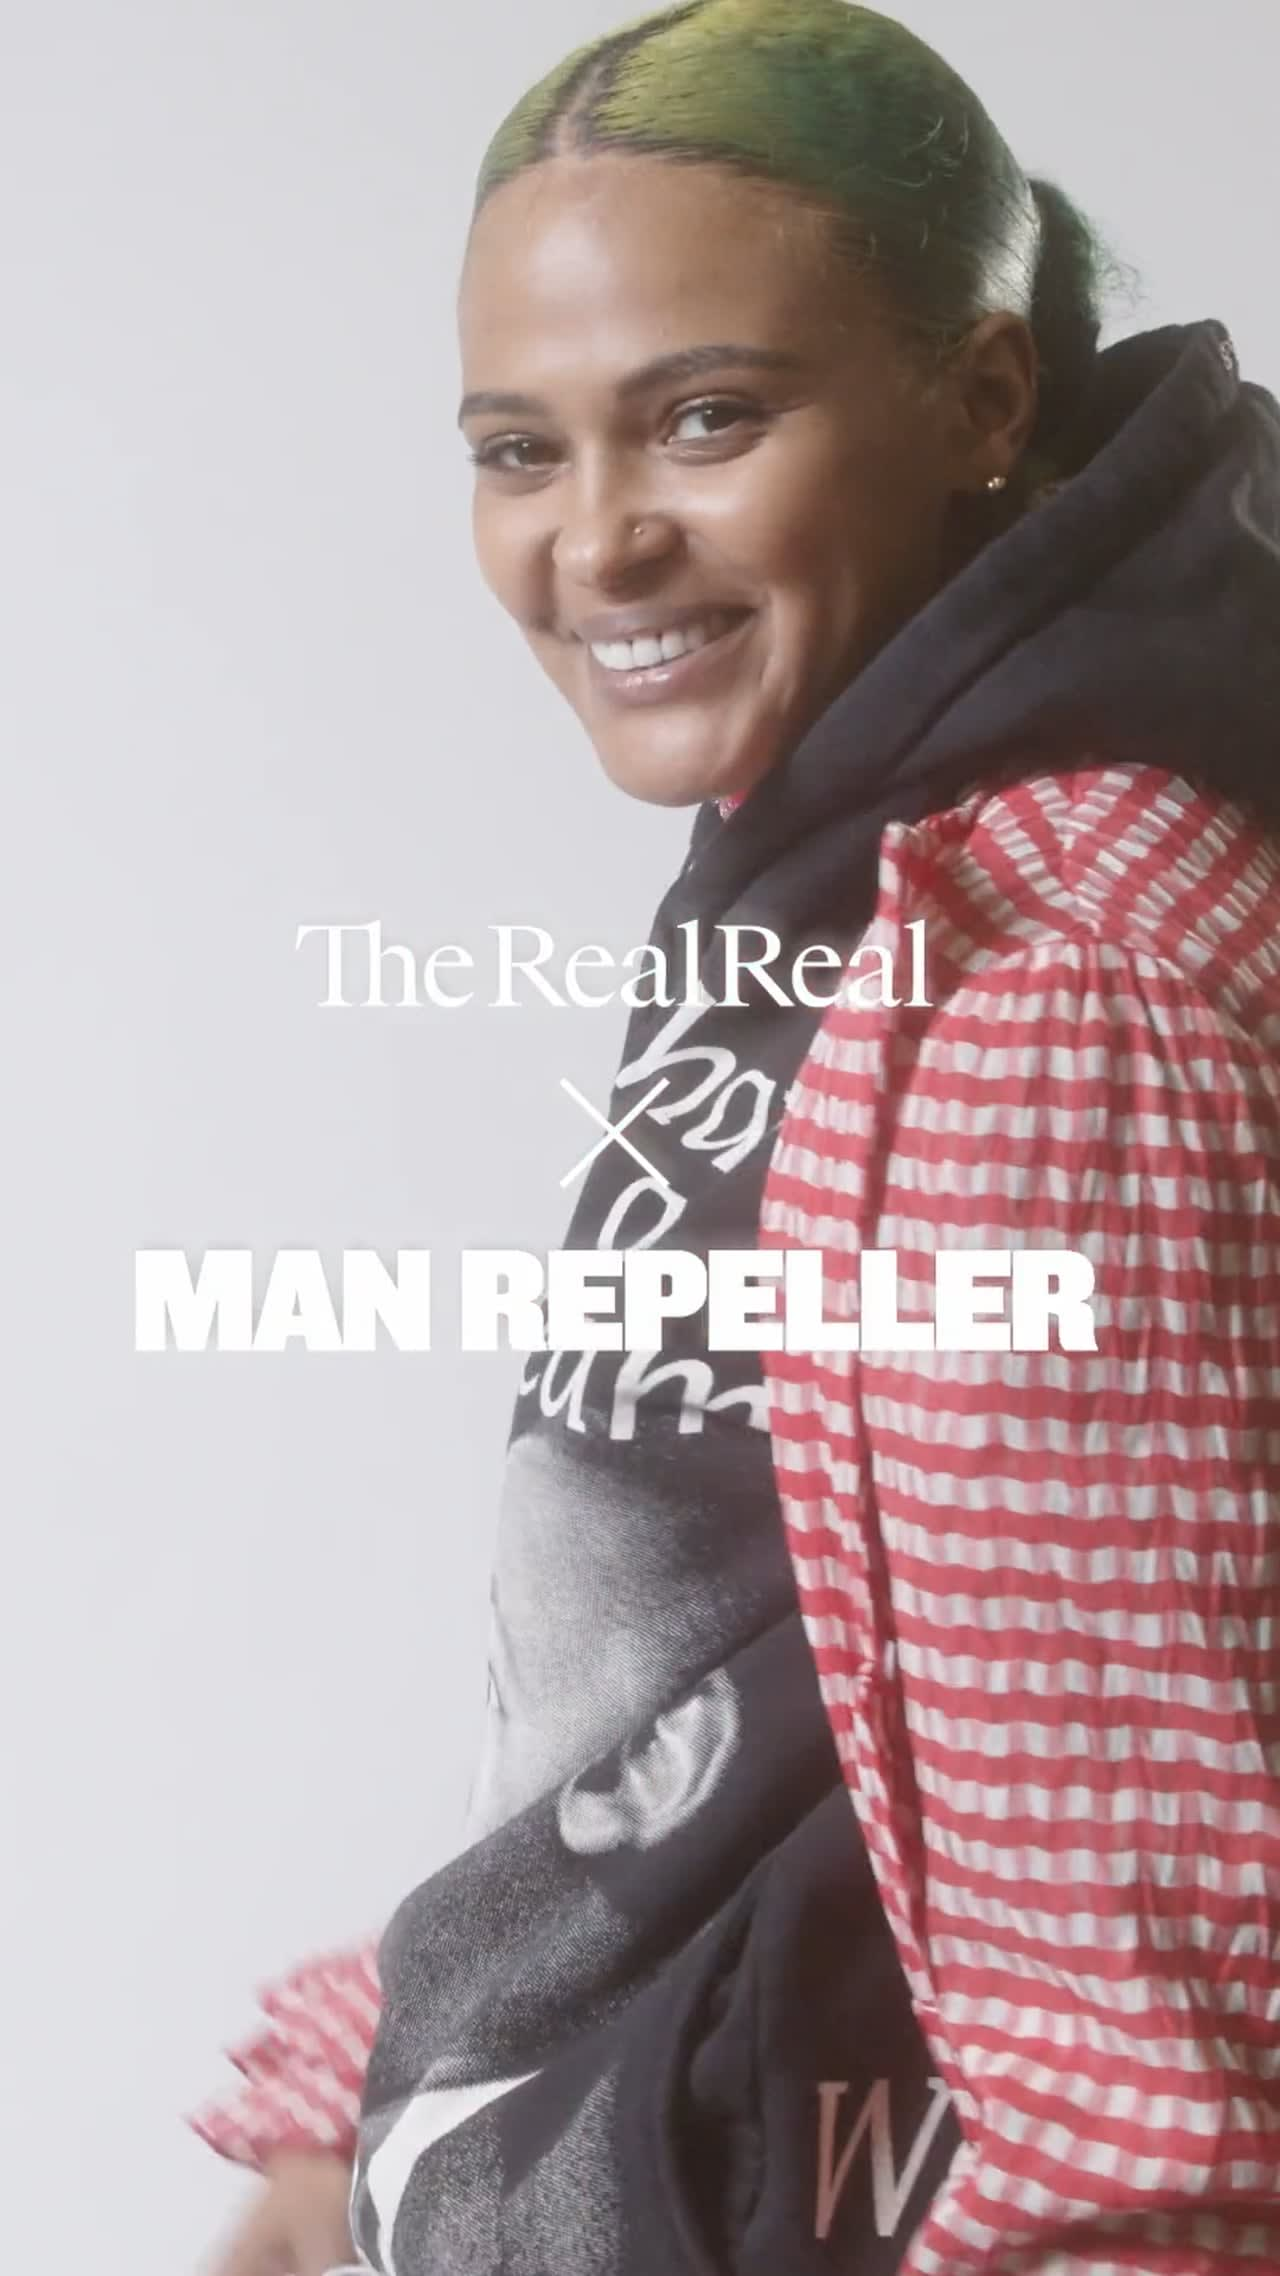 The Real Real x Man Repellar